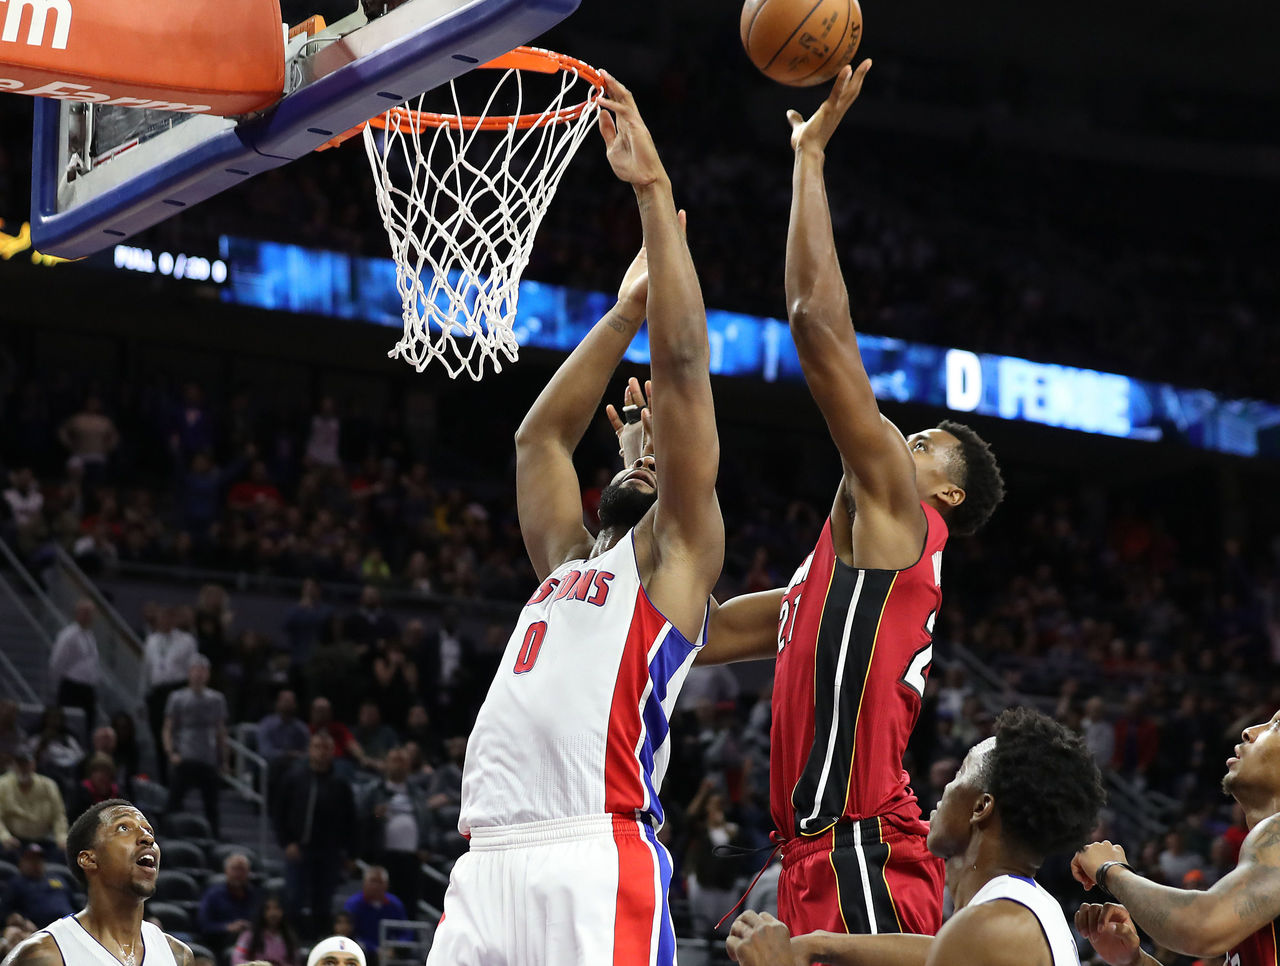 Cropped 2017 03 29t024008z 2143696623 nocid rtrmadp 3 nba miami heat at detroit pistons